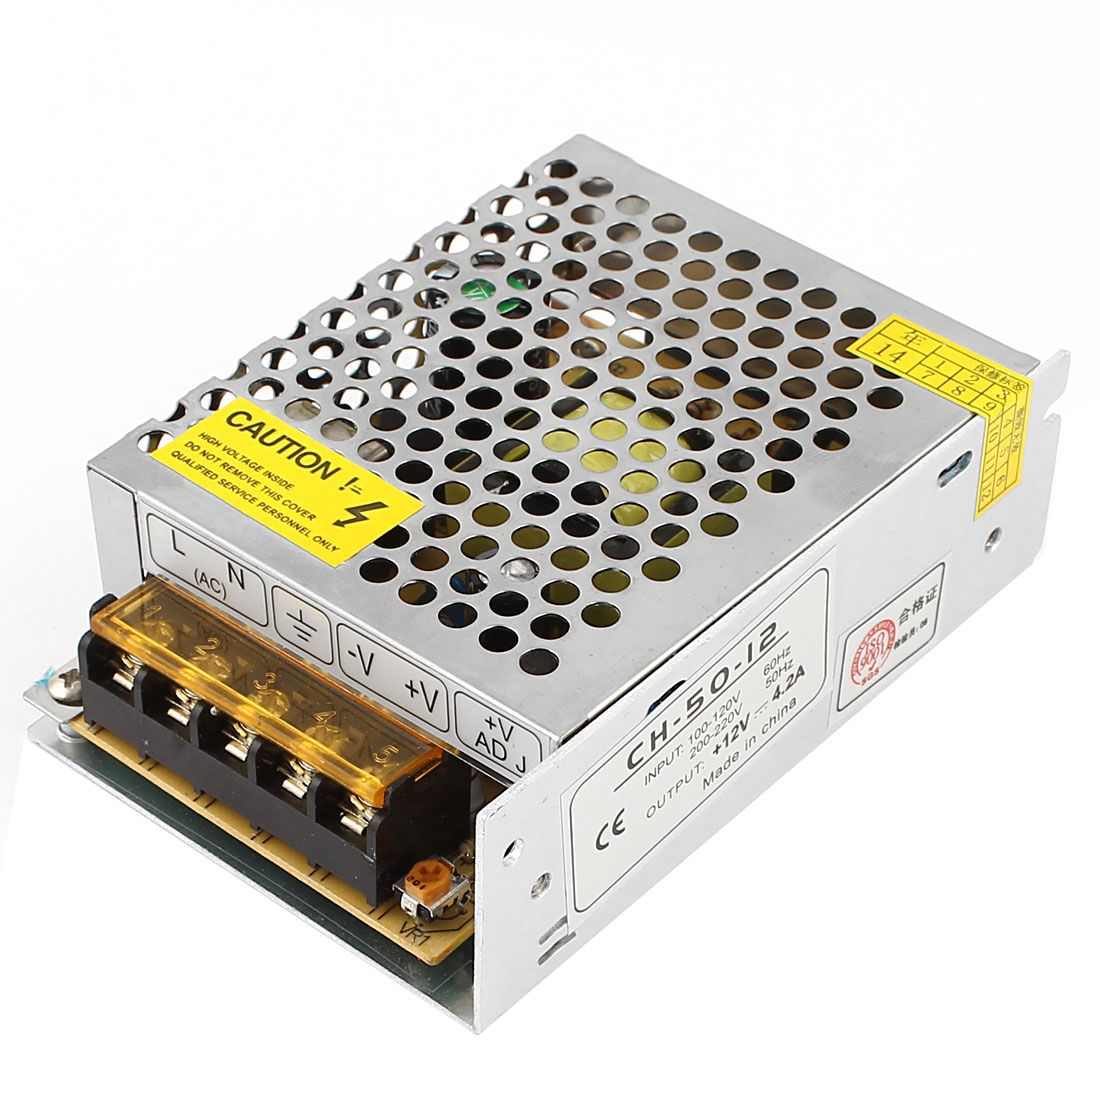 AC 100-120V to DC 12V 4.2A 50W Switching Power Supply Adapter for LED Strip Light